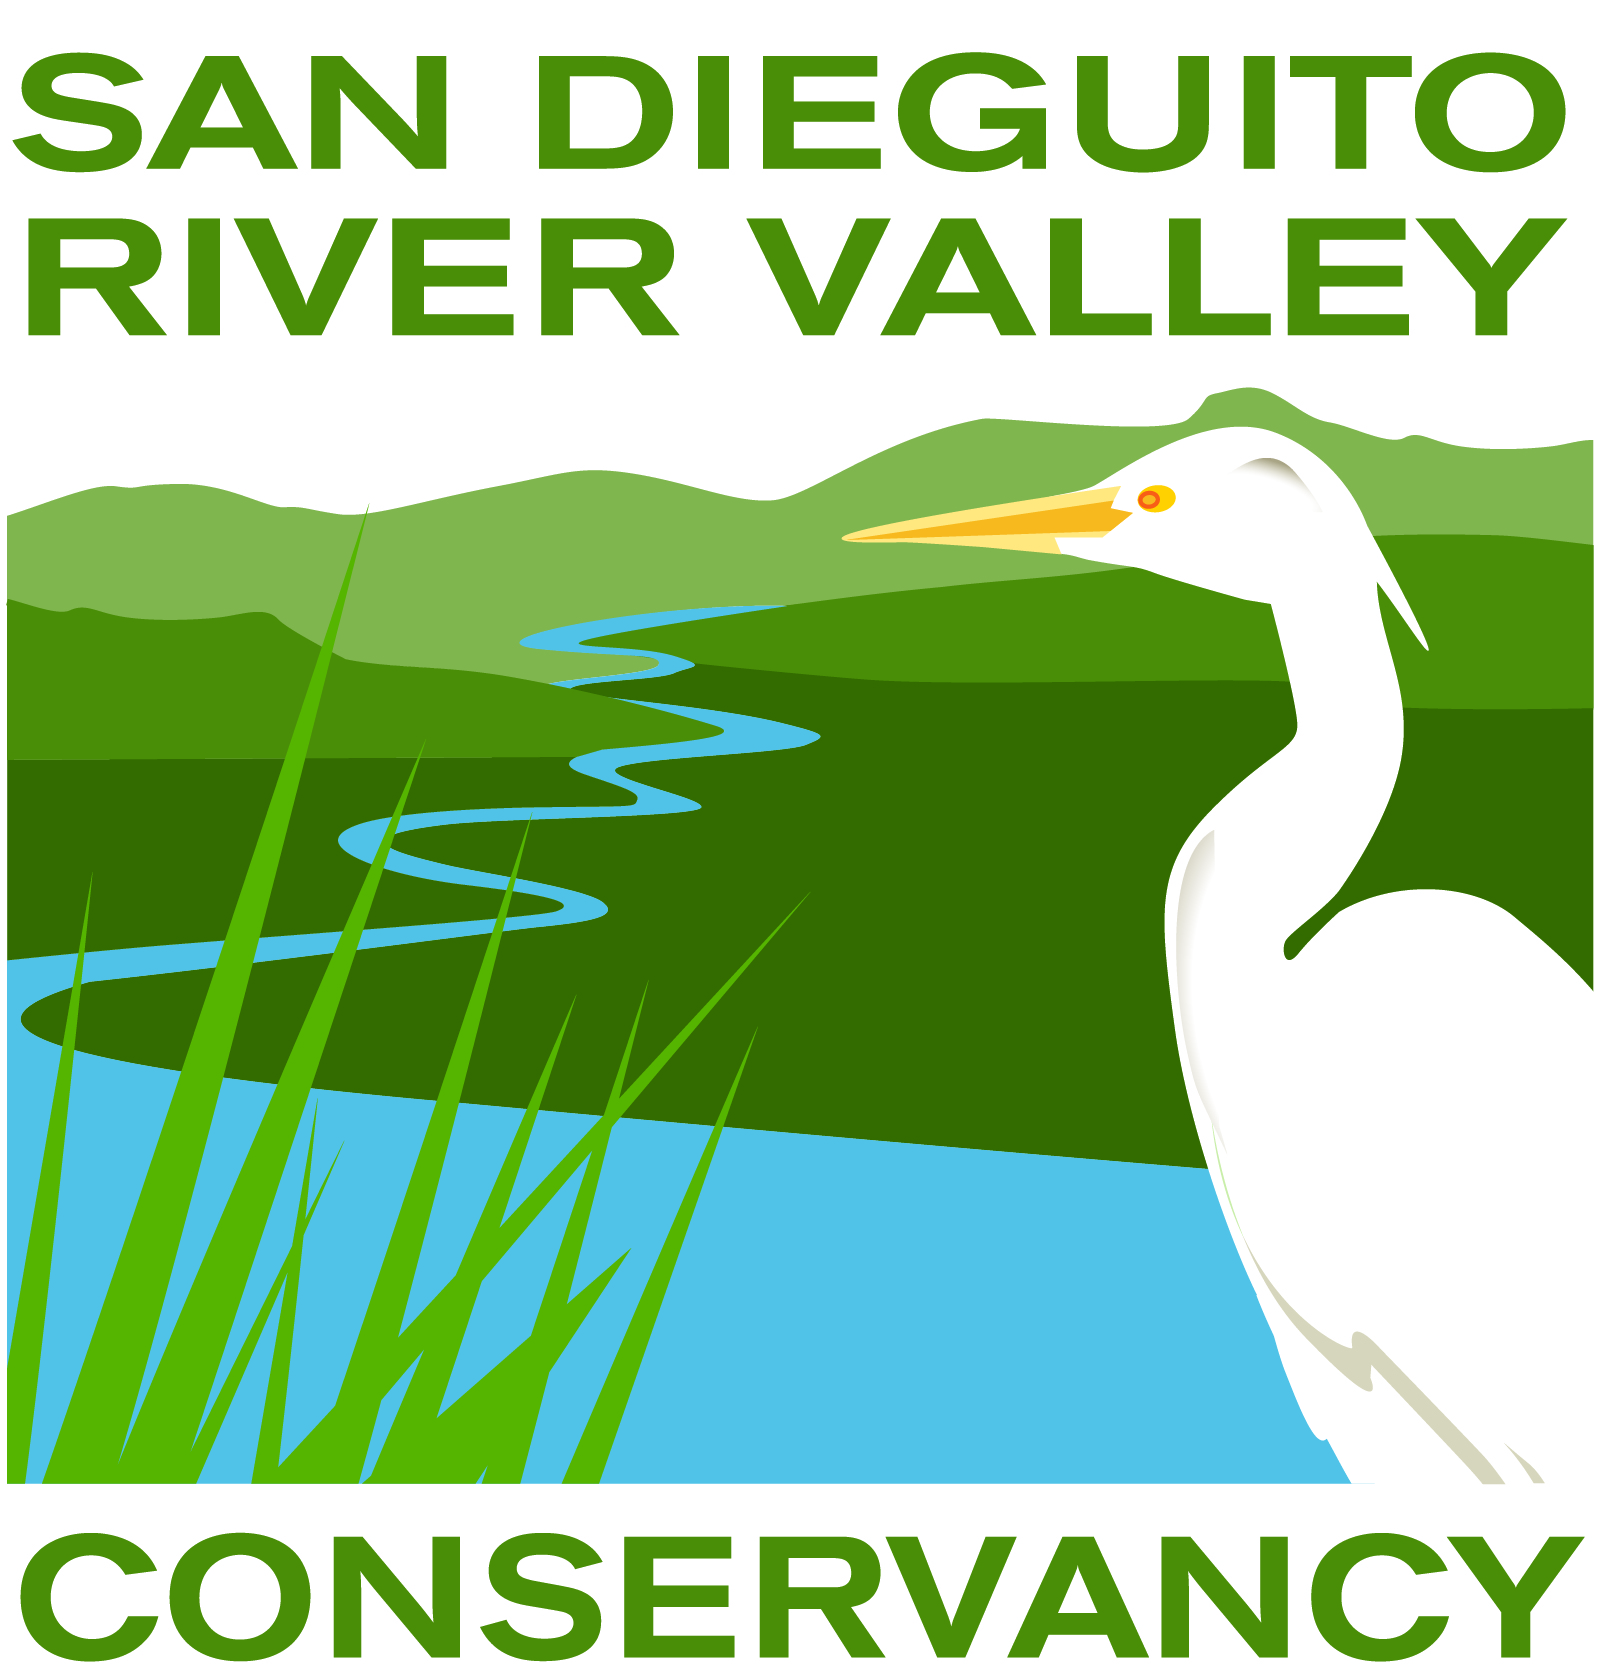 san-dieguito-river-valley-conservancy.jpg